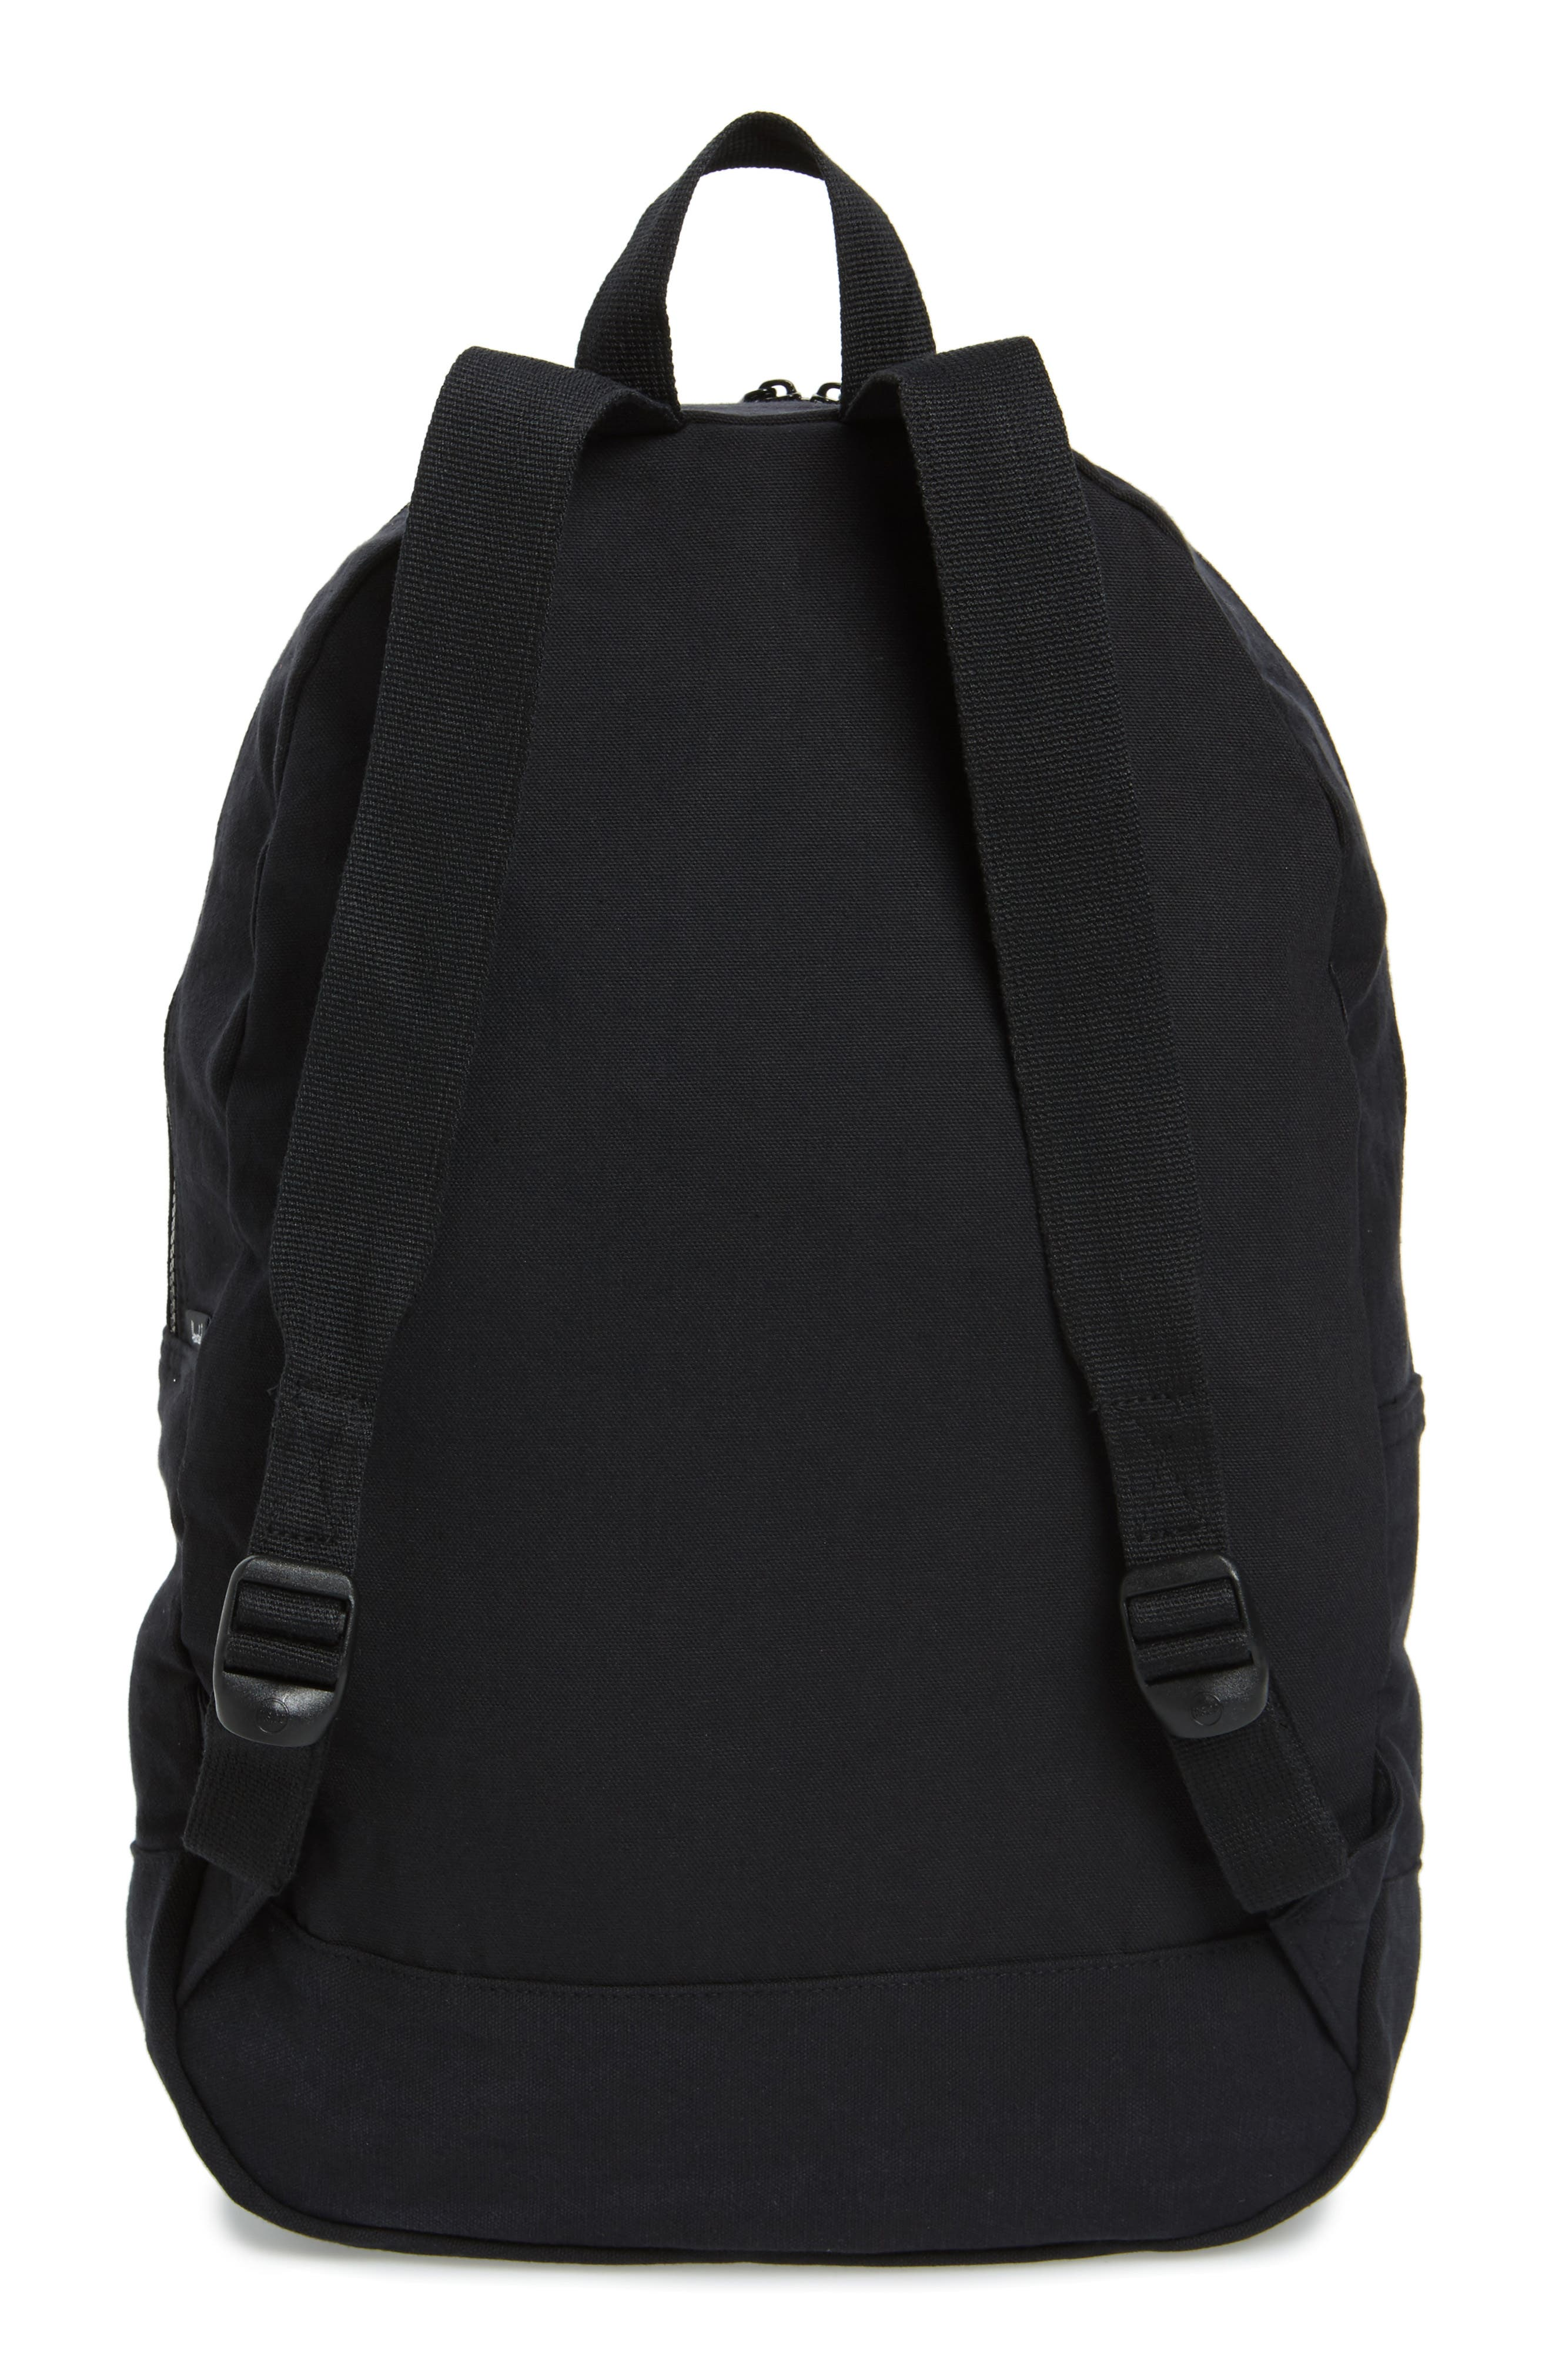 Cotton Casuals Daypack Backpack,                             Alternate thumbnail 22, color,